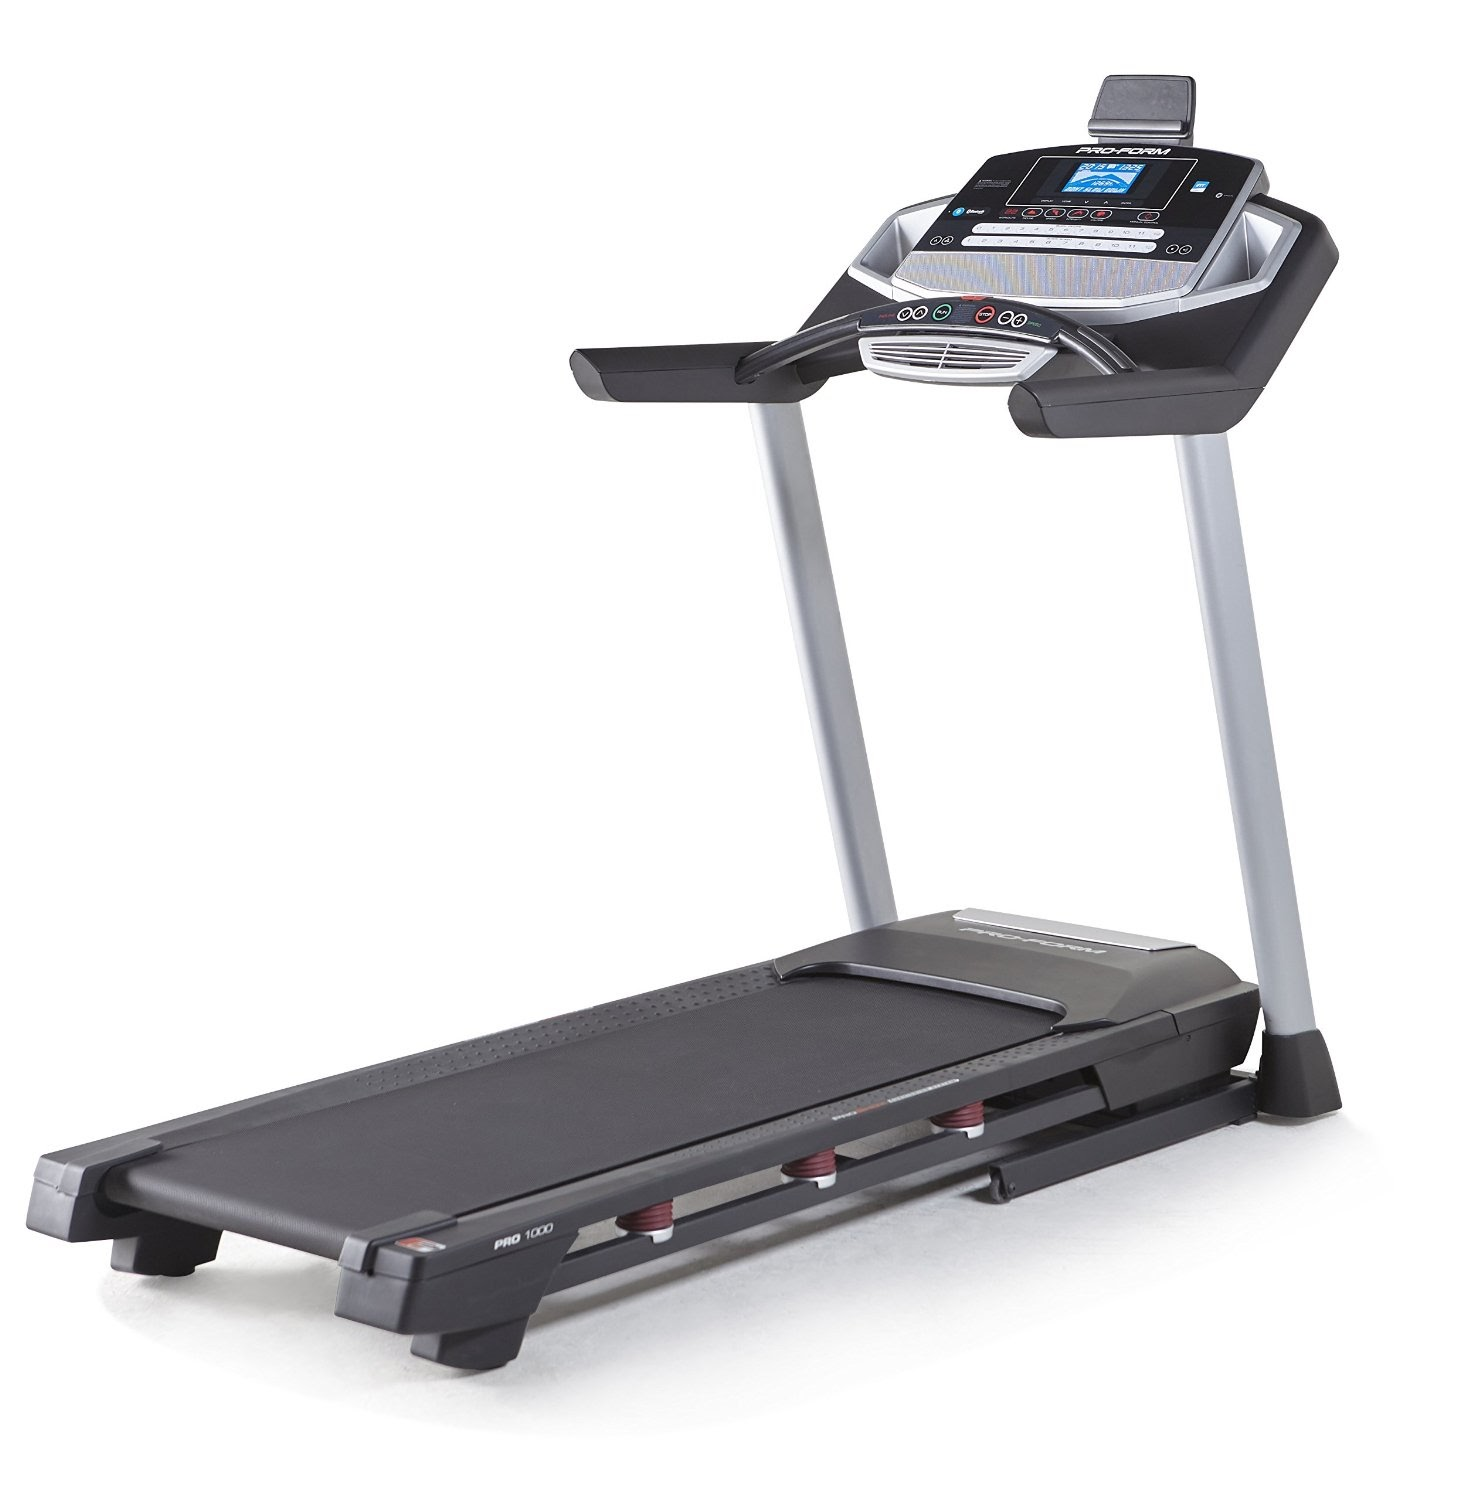 Health And Fitness Den Proform Pro 1000 Treadmill Review